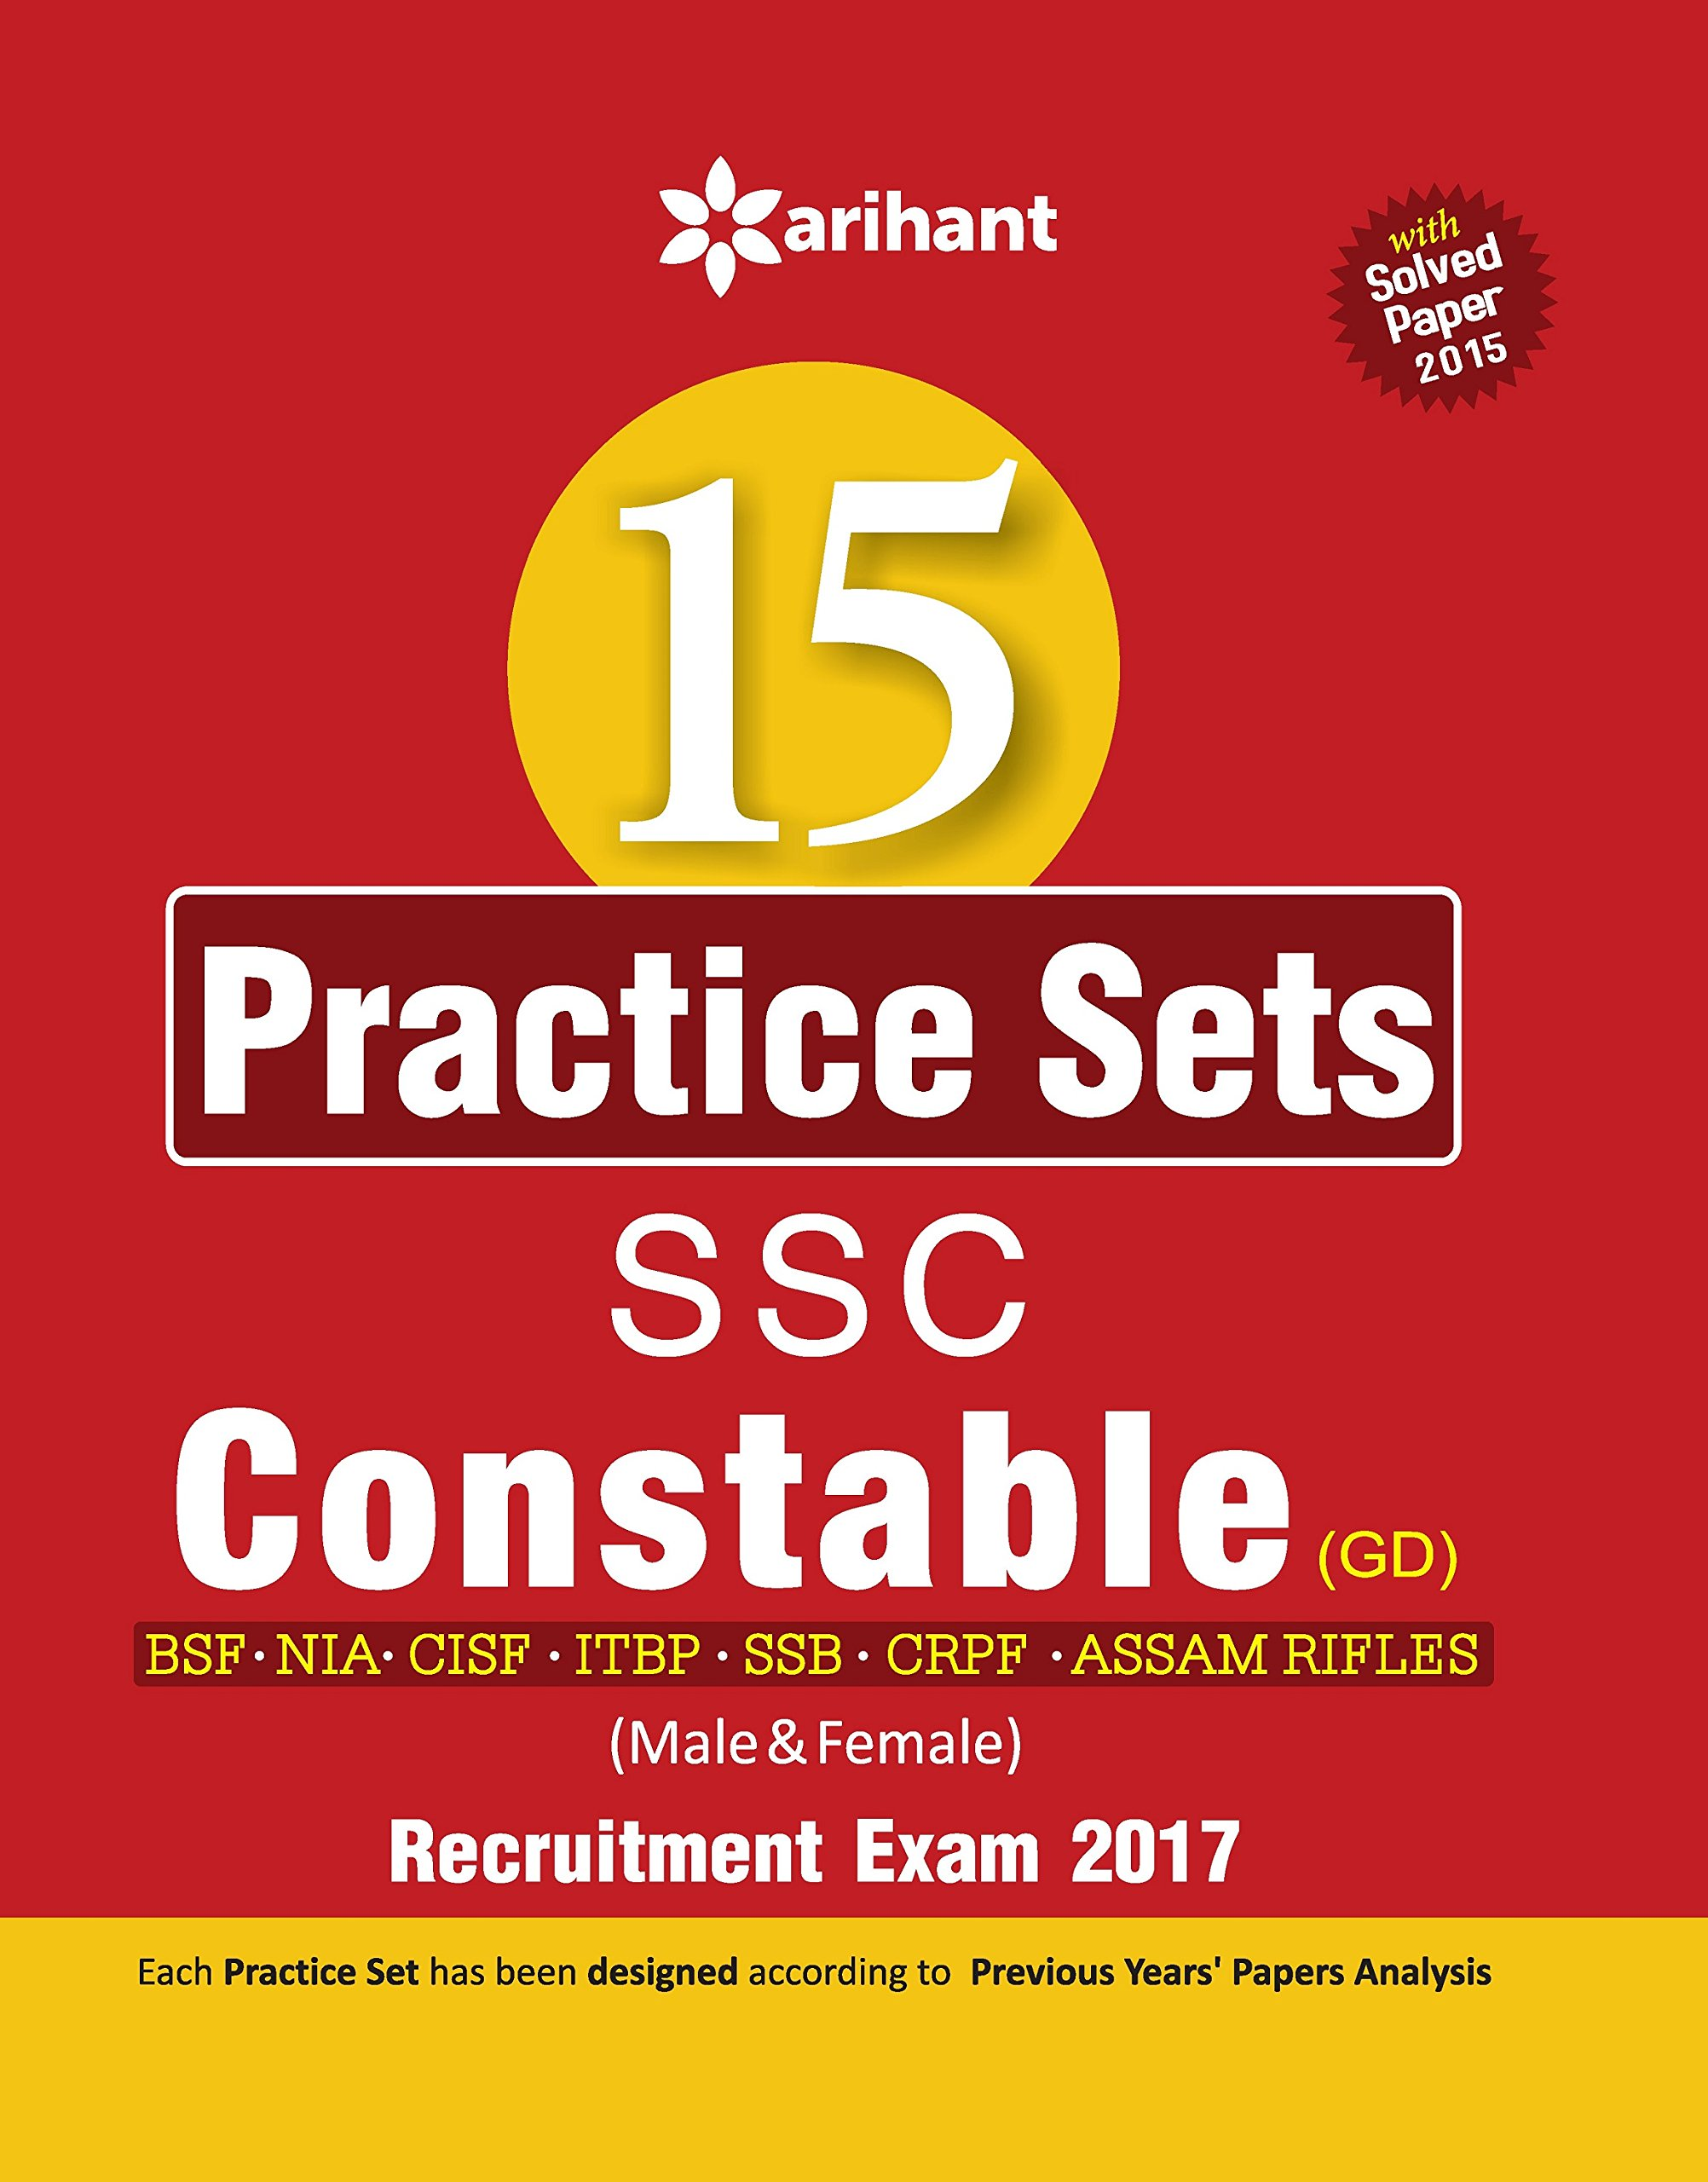 Buy 15 practice sets ssc constable gd entrance exam 2017 book buy 15 practice sets ssc constable gd entrance exam 2017 book online at low prices in india 15 practice sets ssc constable gd entrance exam 2017 fandeluxe Gallery